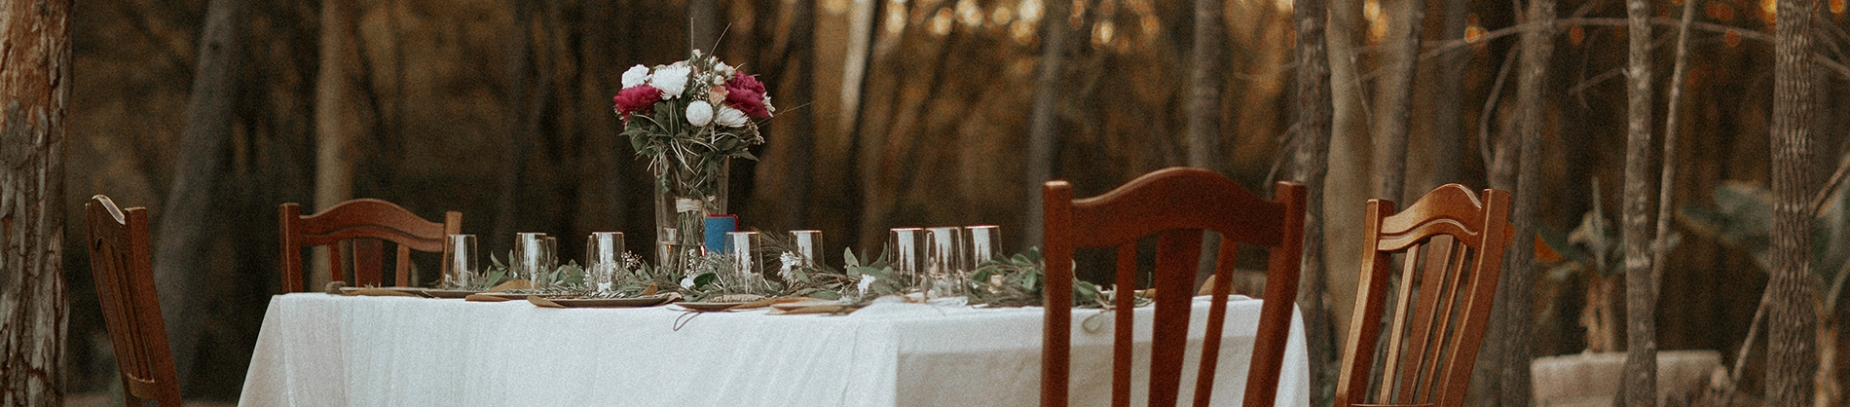 A ornate table set up in a forest